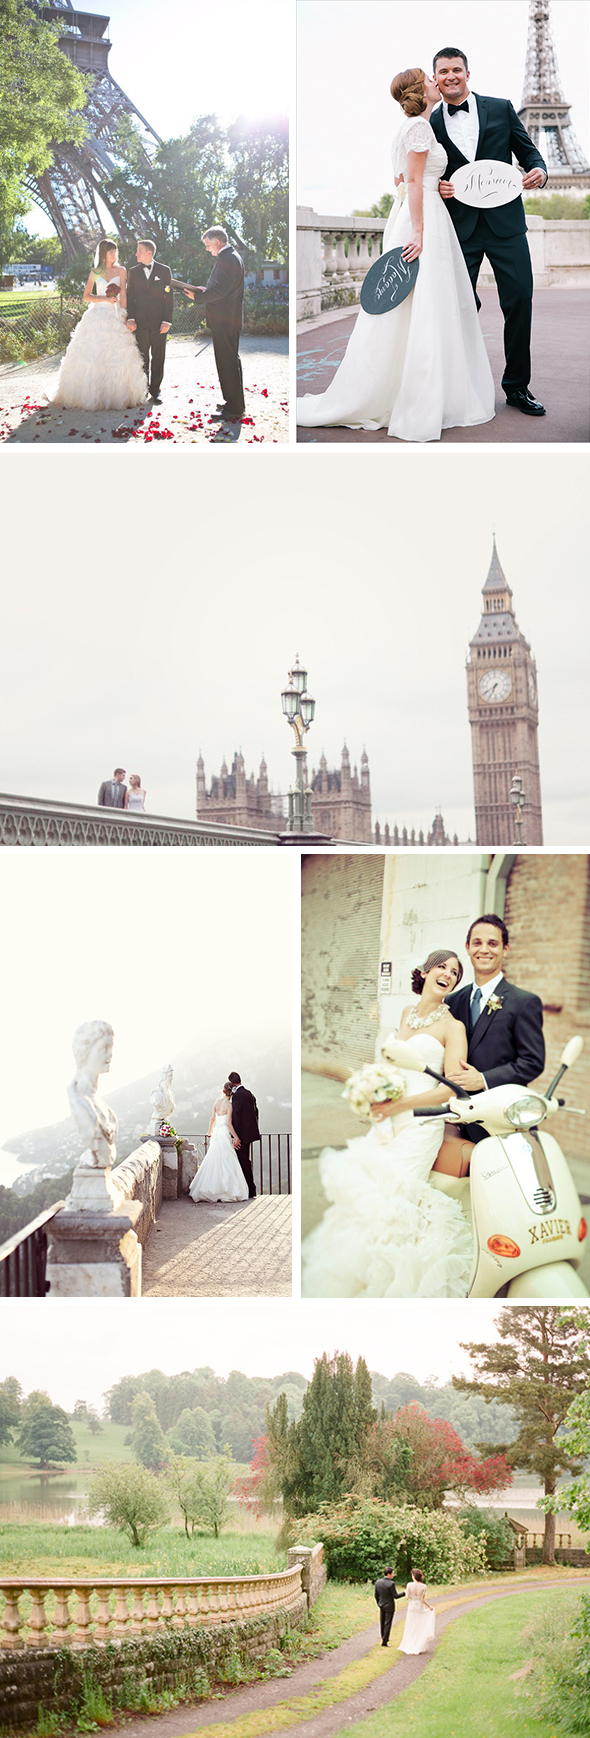 destination wedding location in europe Iconic European Destination Wedding Locations